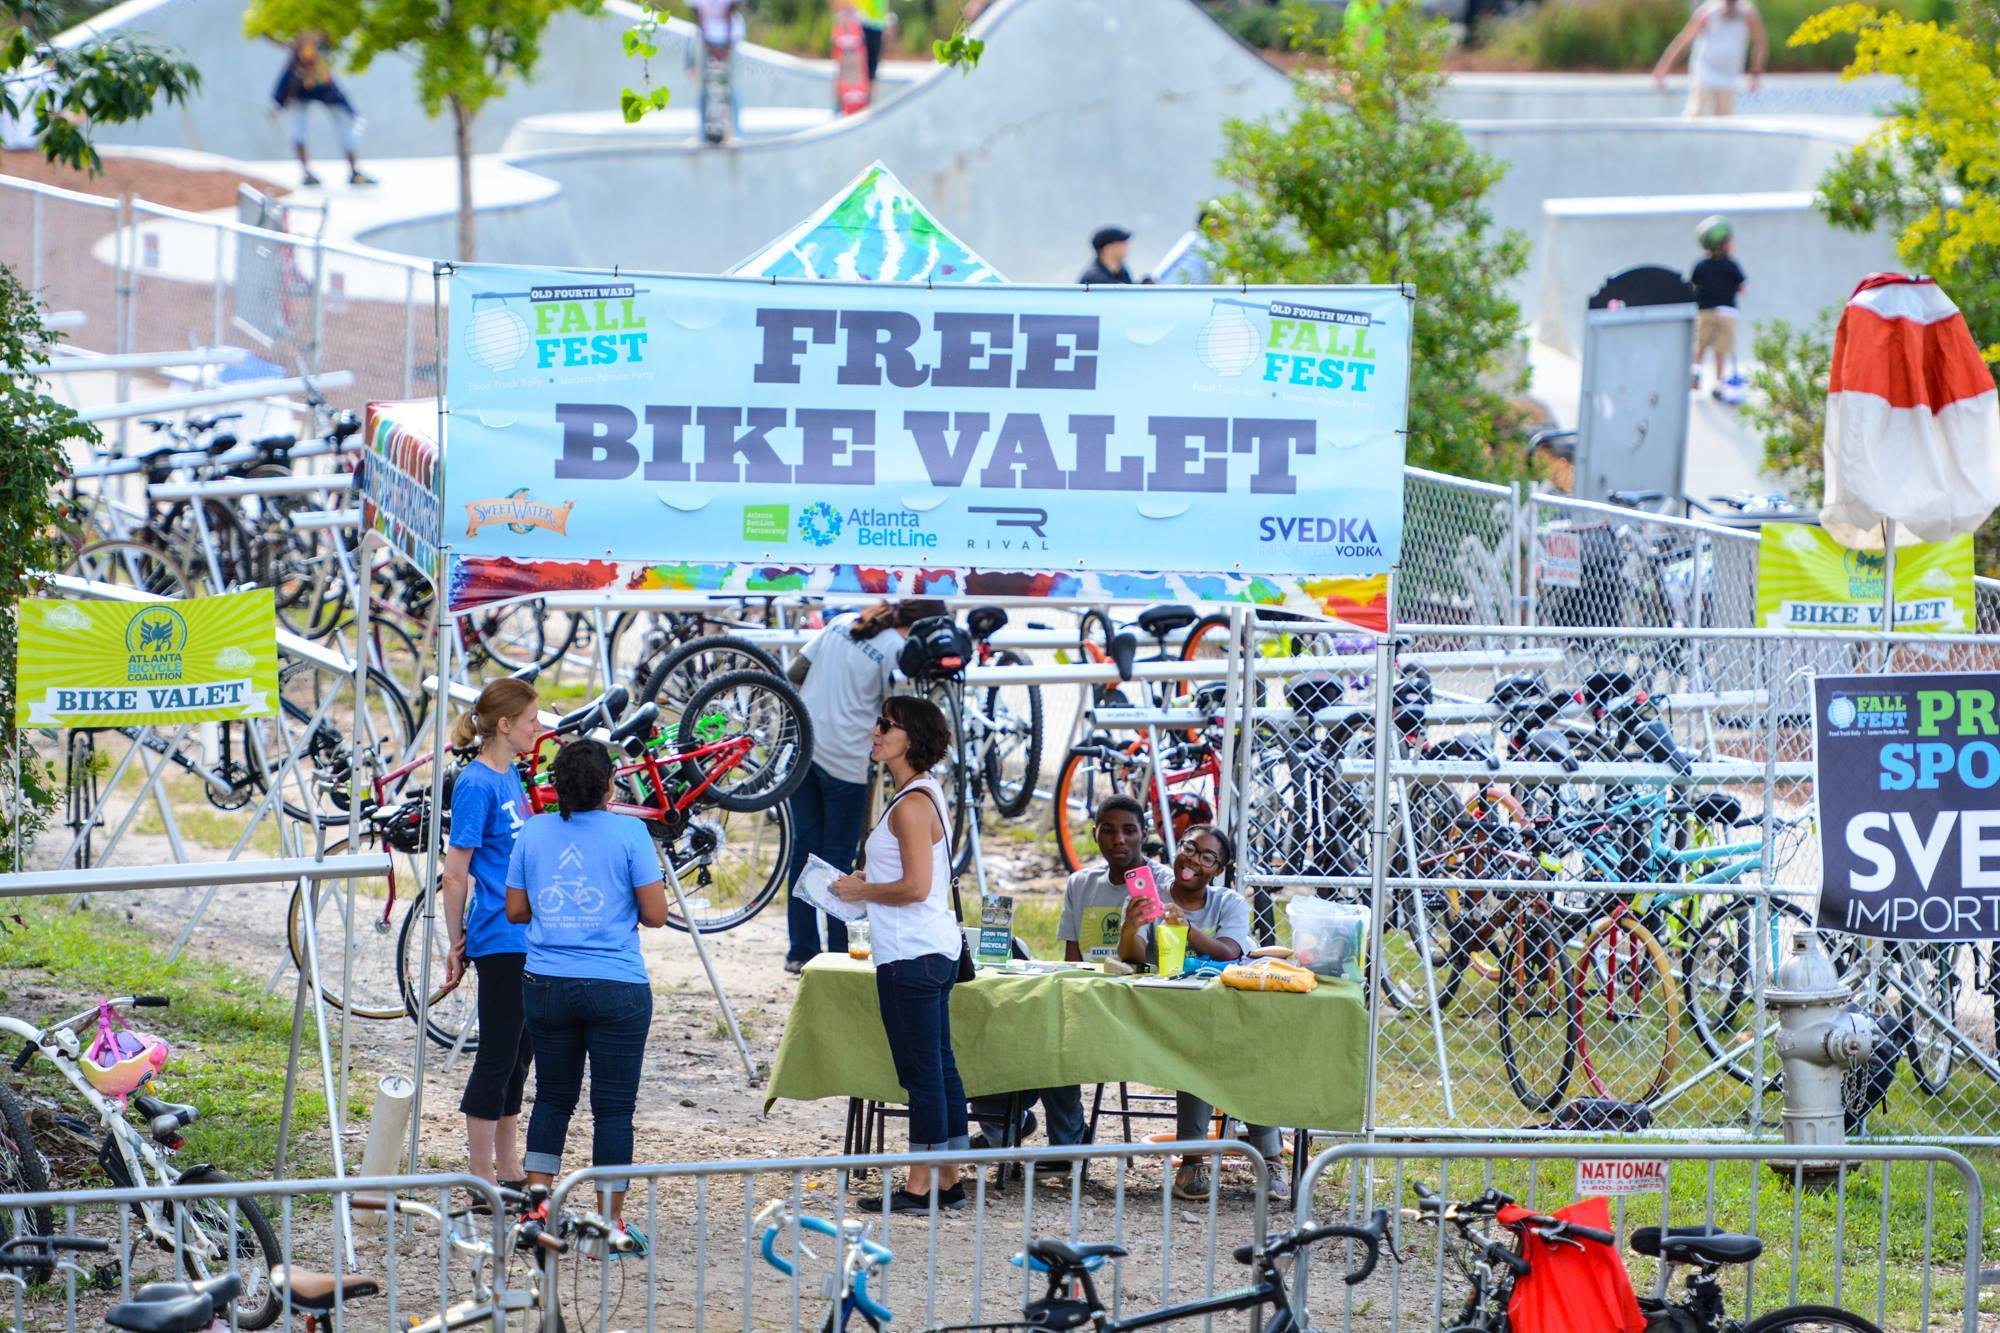 Photo: ABC Bike Valet @ O4W Fall Fest 2015